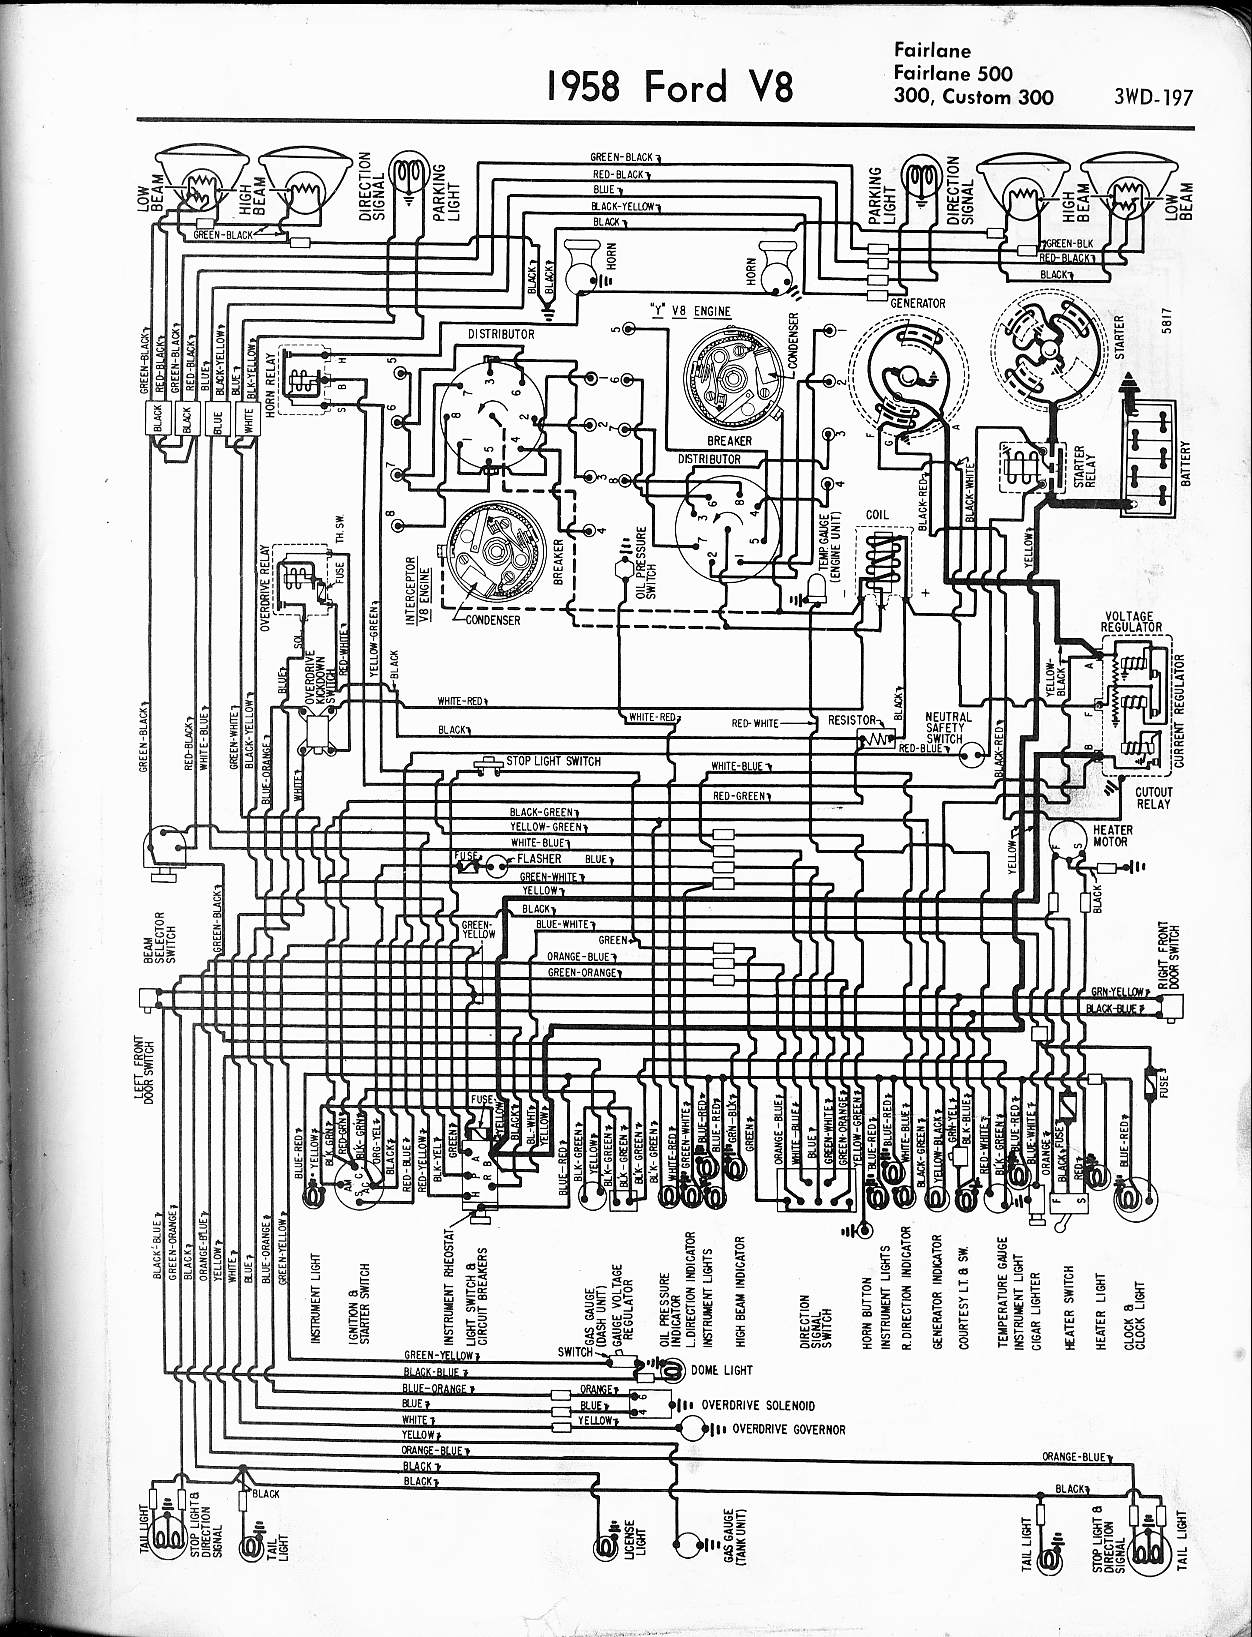 hight resolution of 1955 ford fairlane wiring diagram generator wiring library 2012 dodge avenger wiring diagram 1955 ford wiring diagram